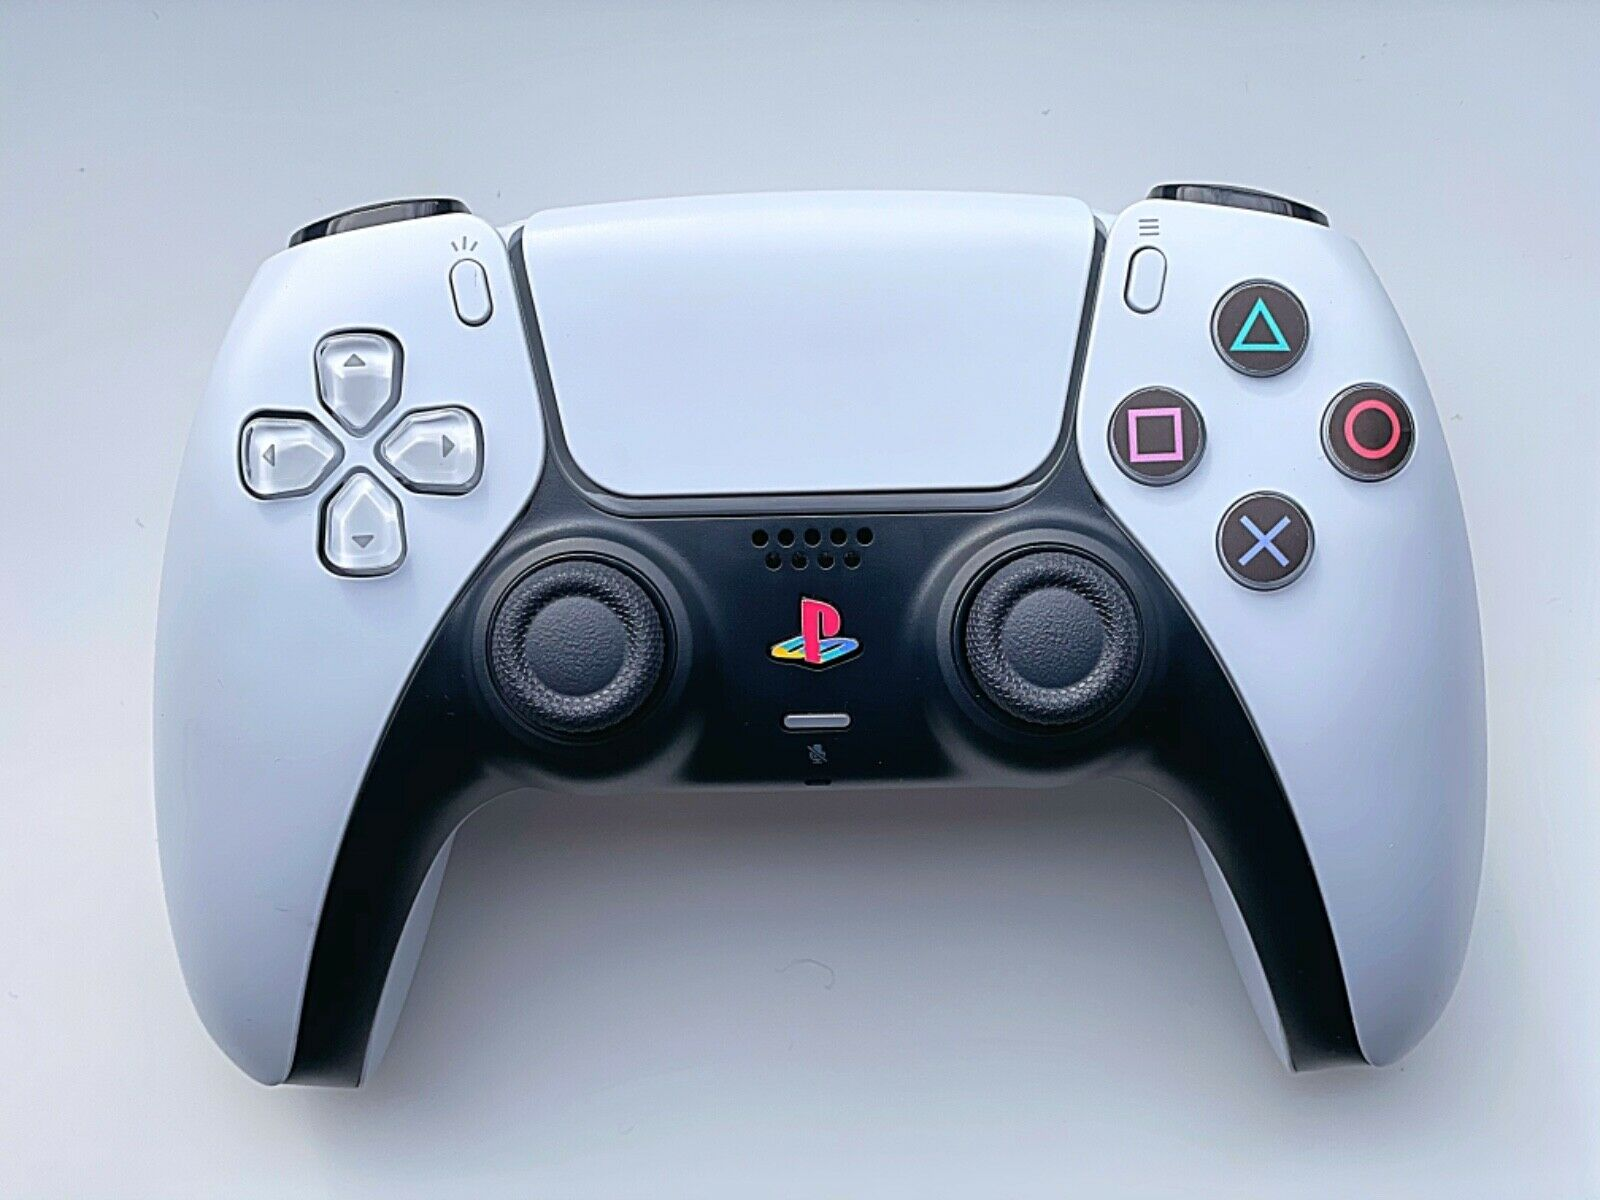 PlayStation 5 PS5 Pad Controller PS Classic Black Buttons Vinyl Overlay Stickers